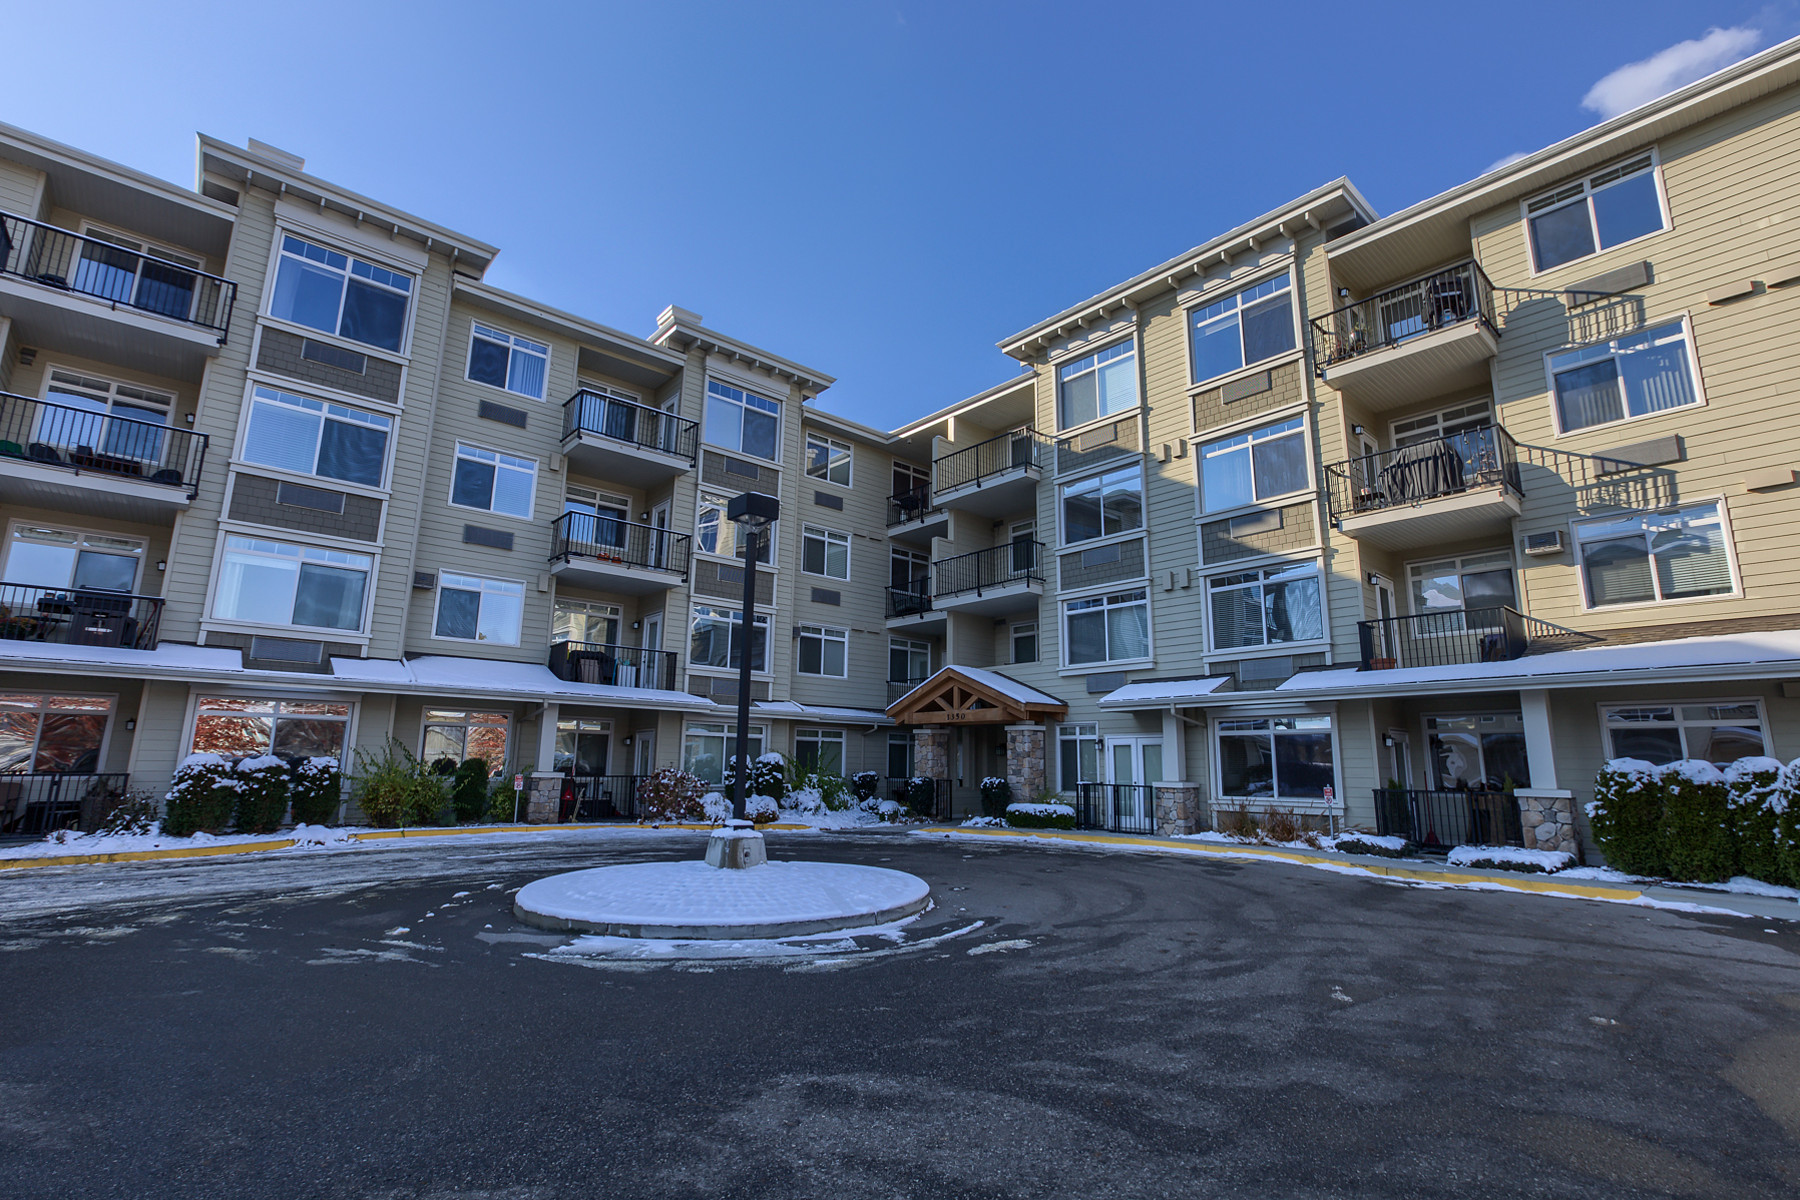 Квартира для того Продажа на Desirable One Bed One Bath 306-1350 Ridgeway Place, Kelowna, Британская Колумбия, V1Y9T6 Канада